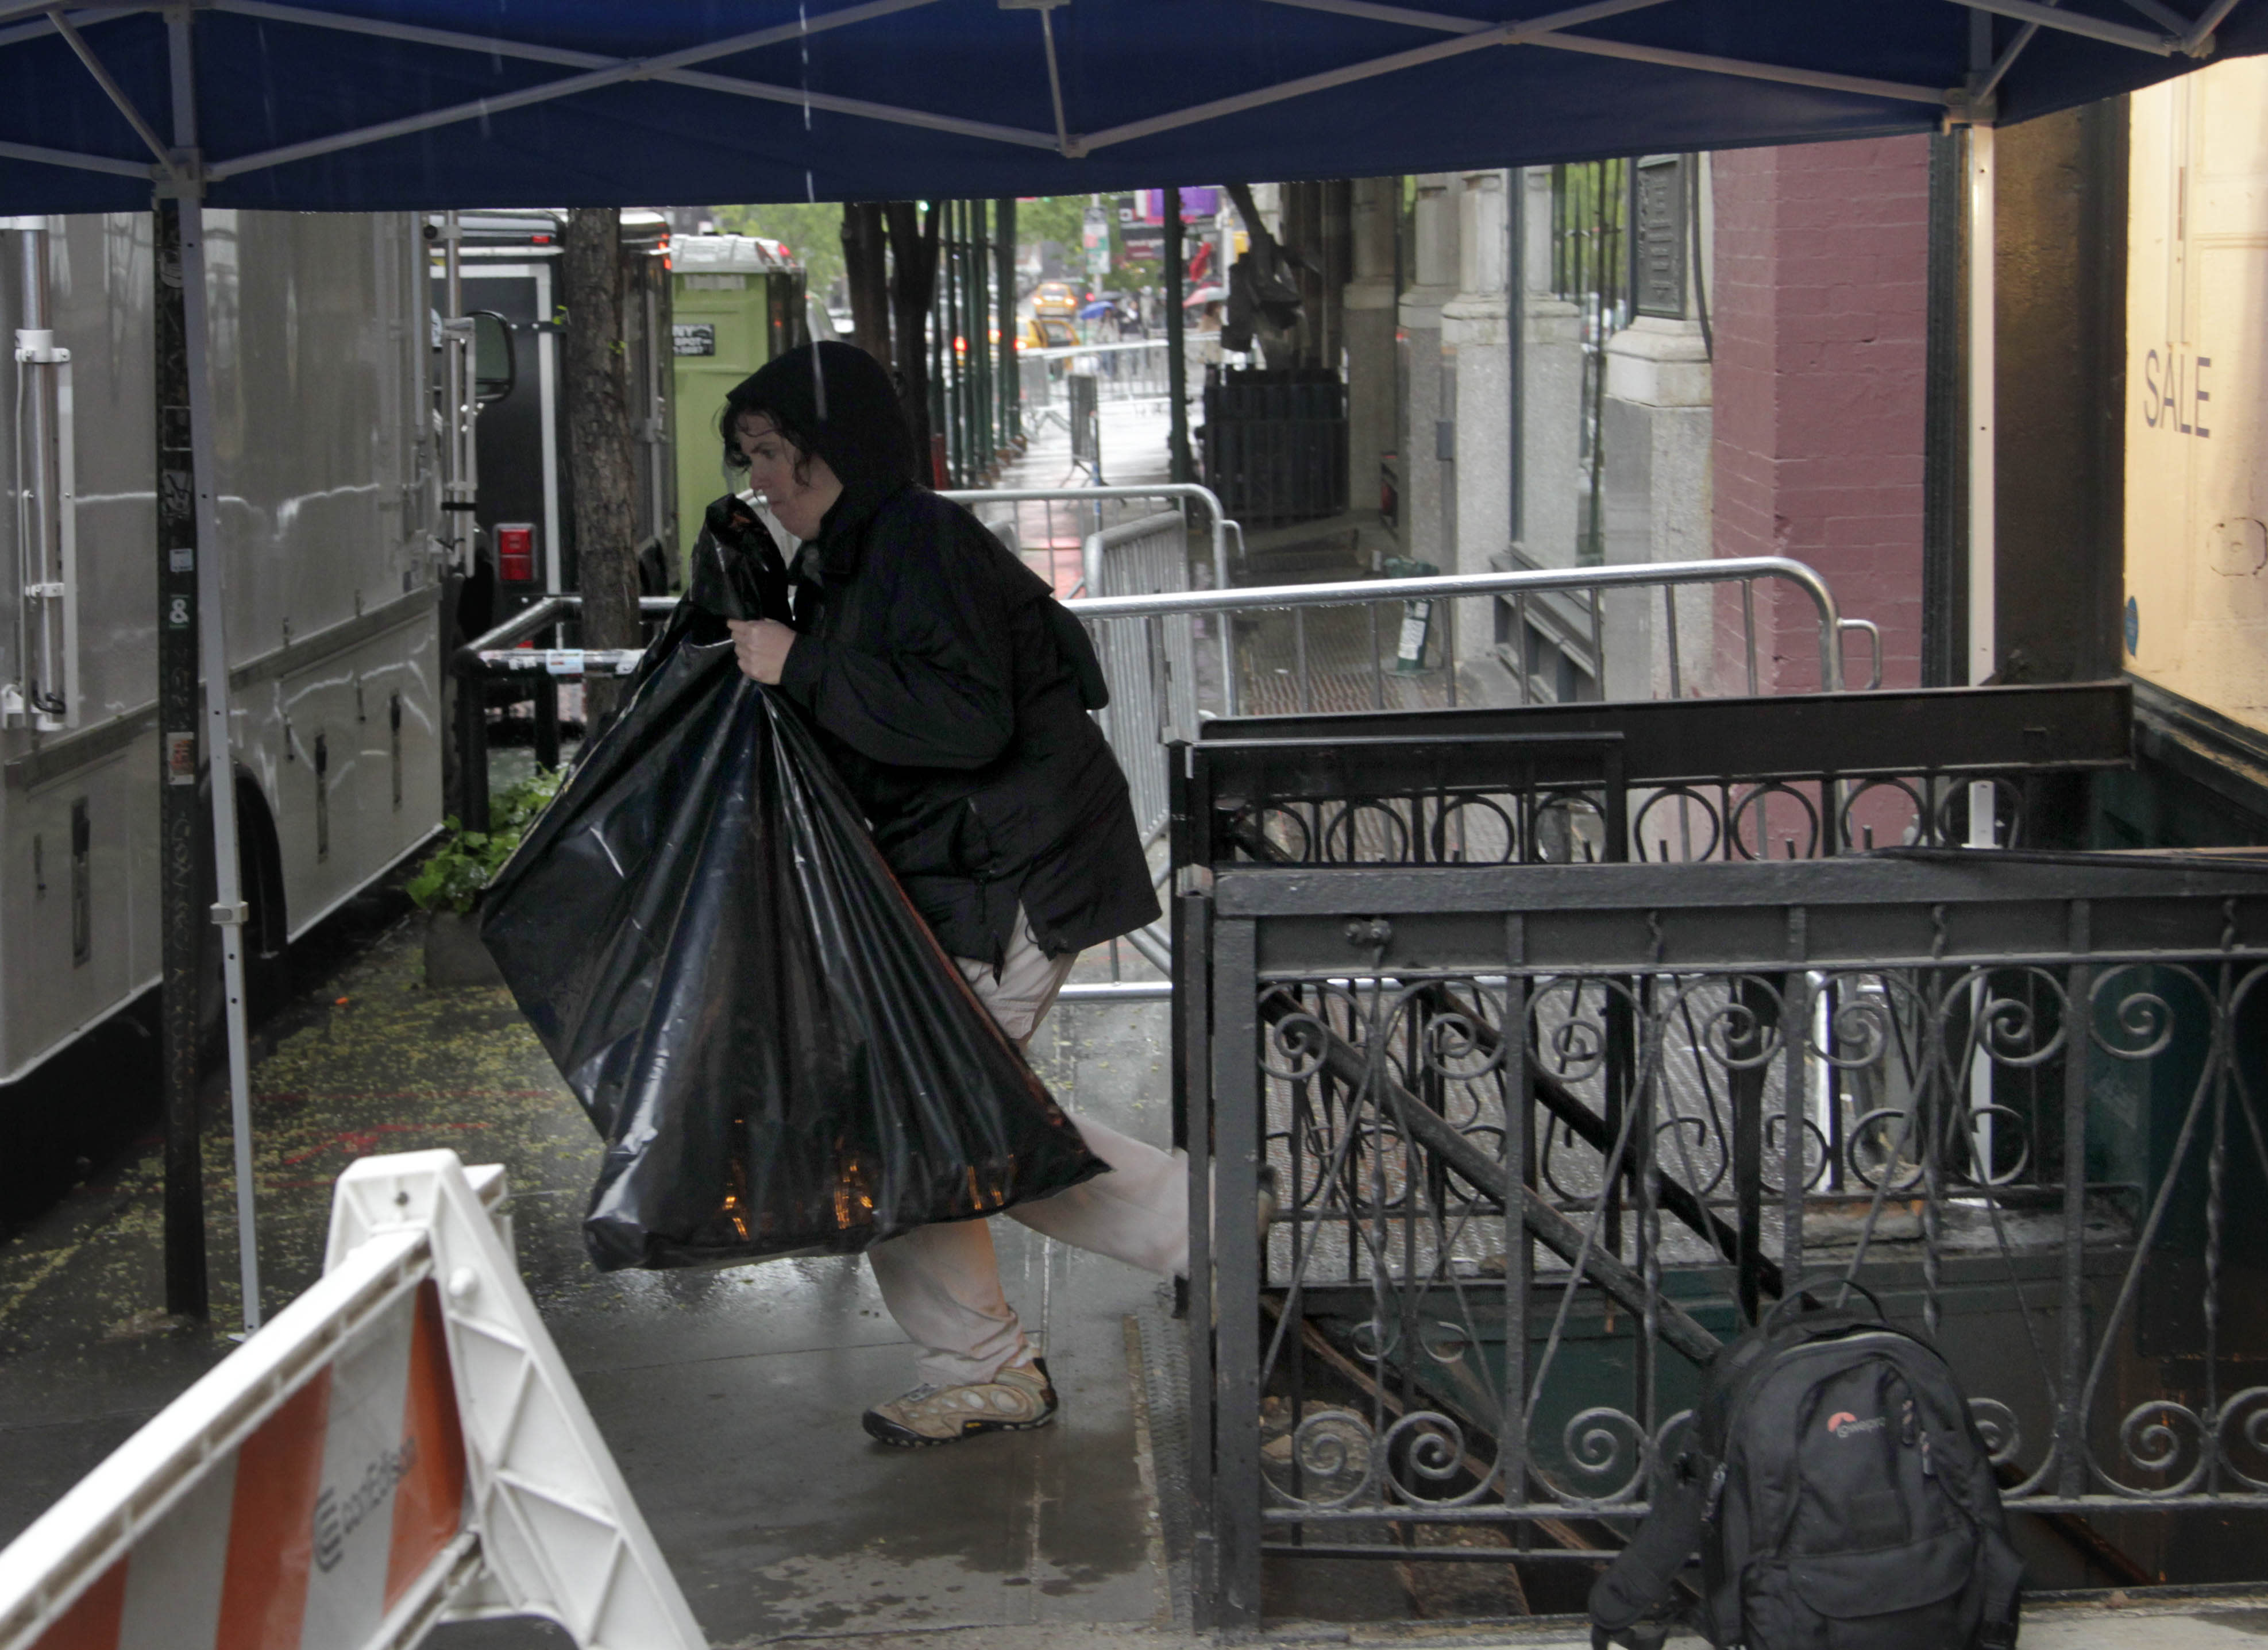 An investigator brings bags out of a basement that the Federal Bureau of Investigation is investigating in connection to the 1979 disappearance of 6-year-old boy Etan Patz in New York, Sunday, April 22, 2012. Heavy rains expected in the region halted the investigation on Sunday, but work in the basement is expected to resume Monday morning. (AP Photo/Seth Wenig)